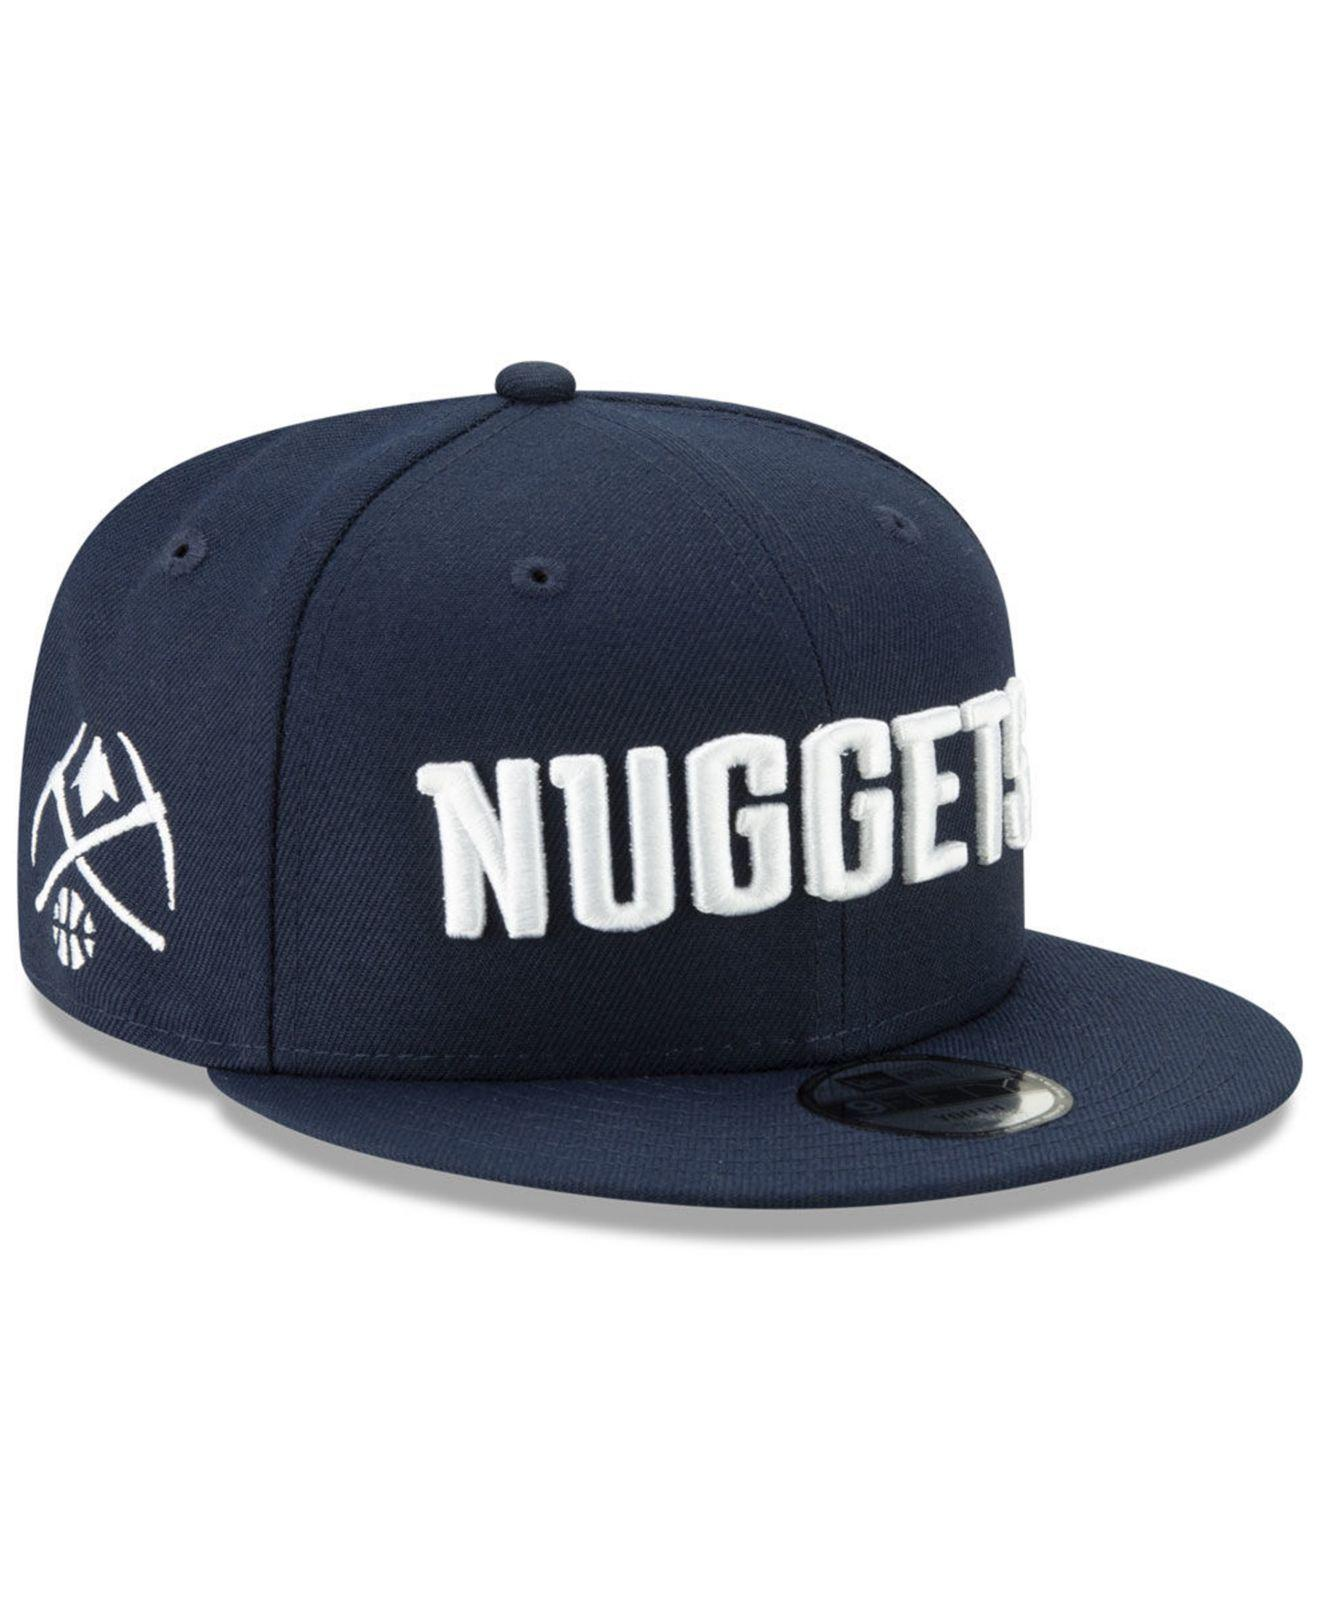 finest selection 66c2a 6507a KTZ Denver Nuggets City Series 2.0 9fifty Snapback Cap in Blue for ...